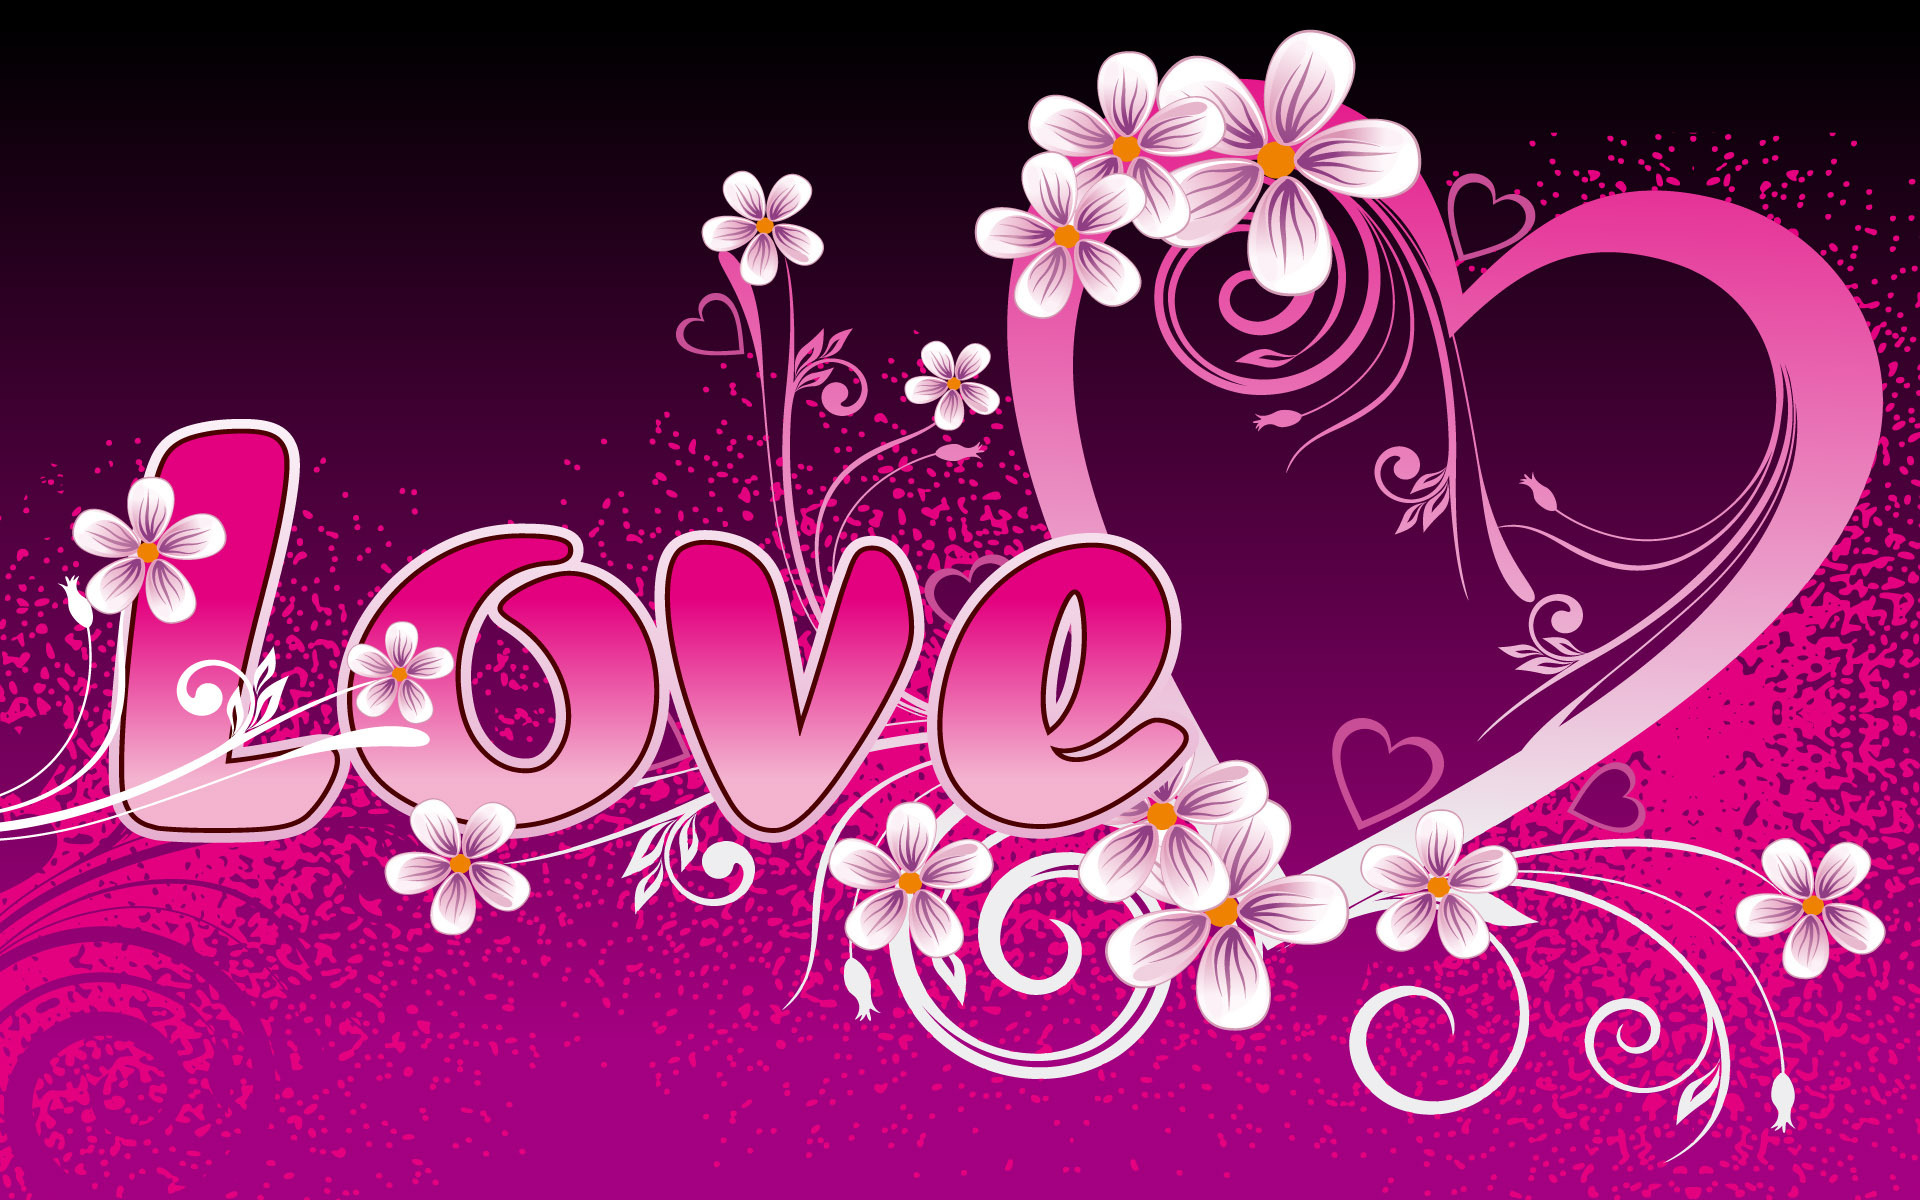 One Love Wallpaper | Nice Pics Gallery